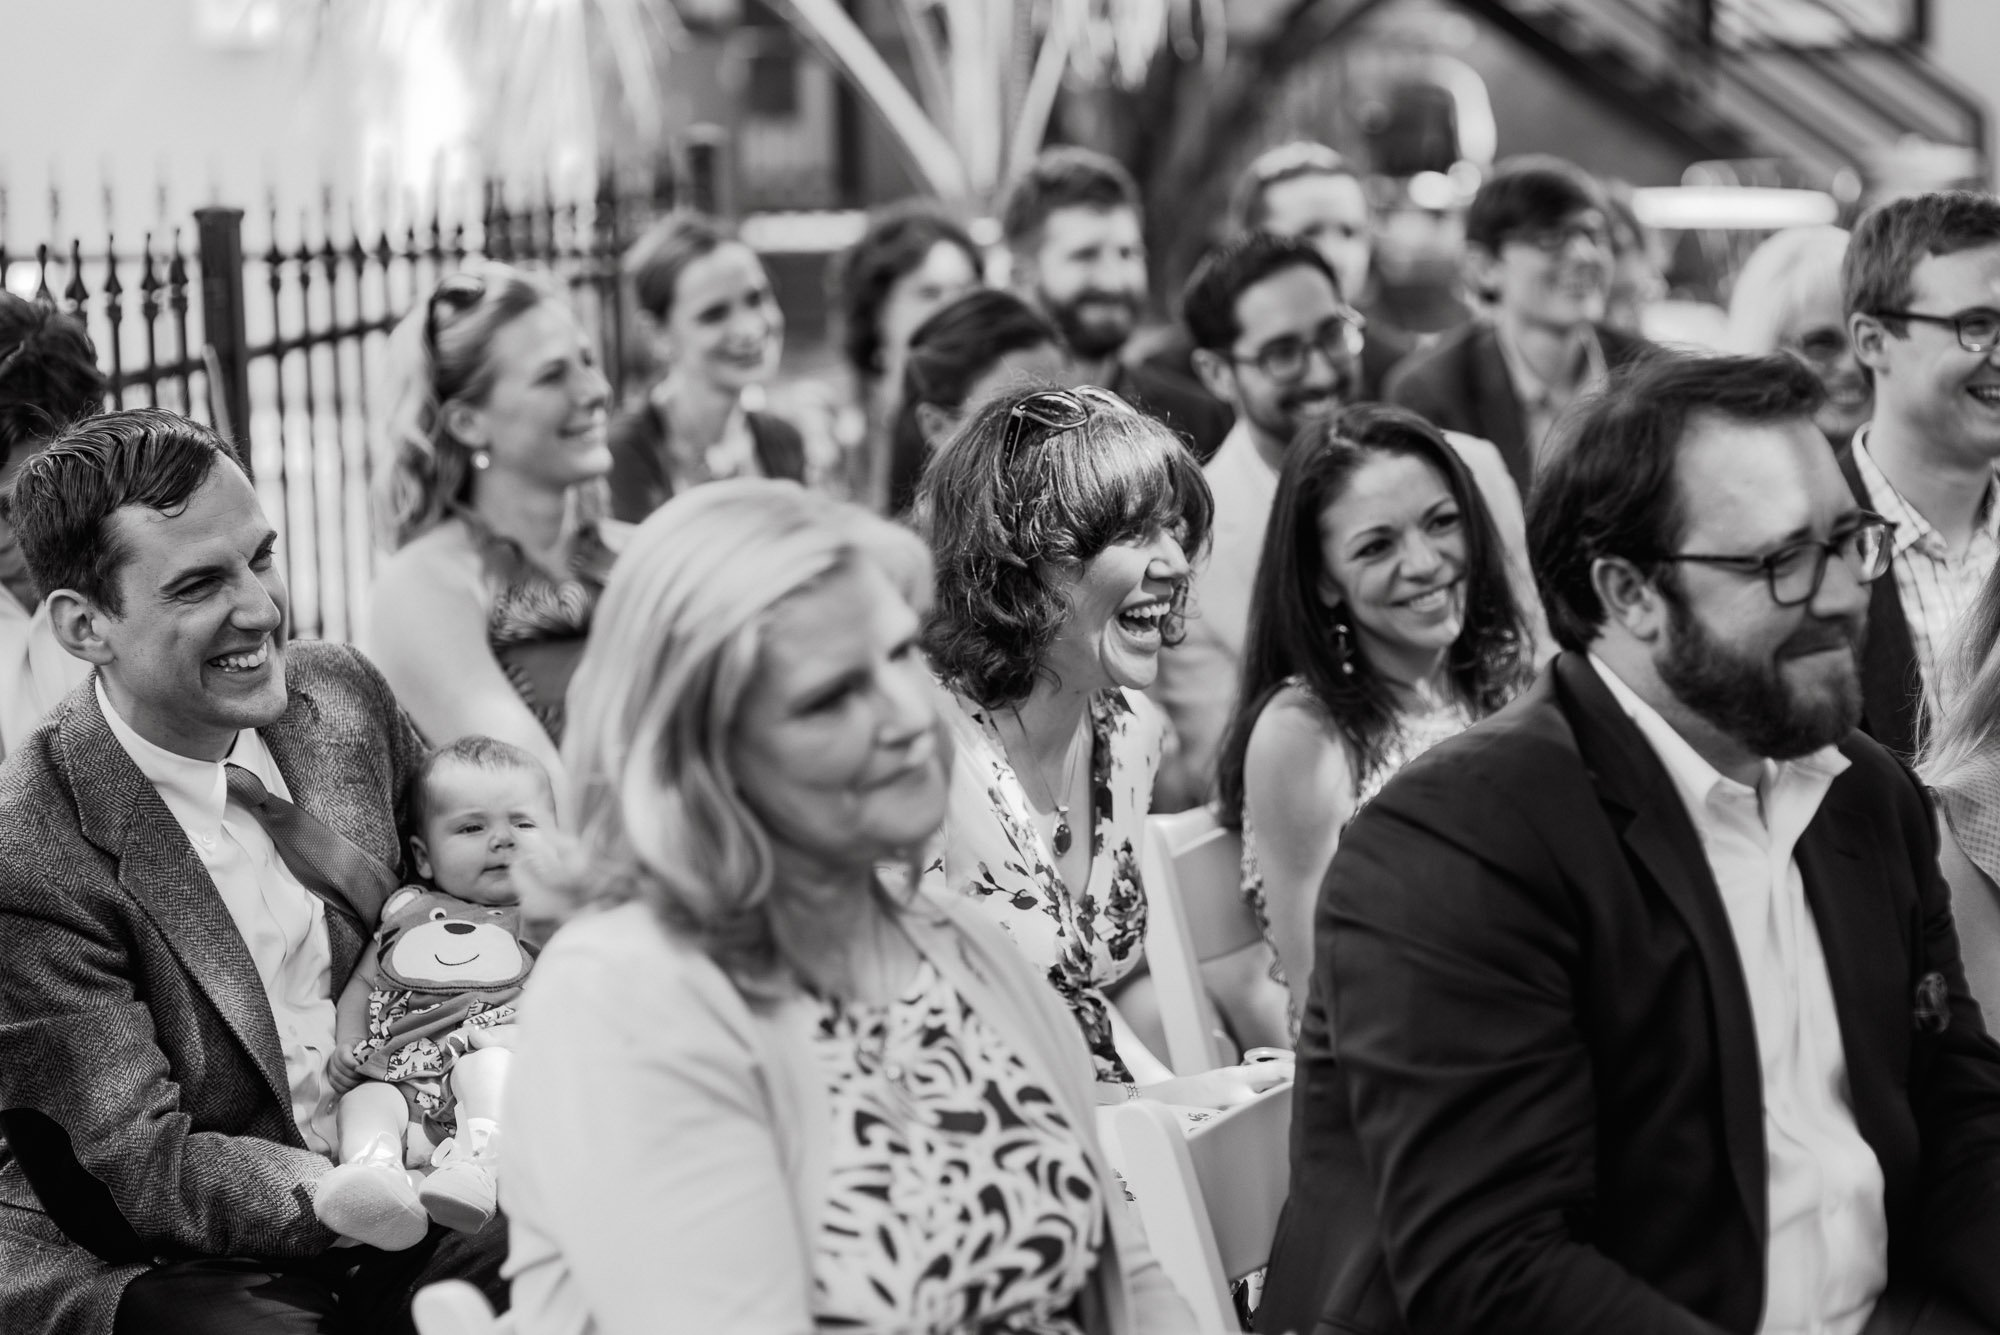 candid wedding photography at a backyard DIY wedding in San Antonio texas